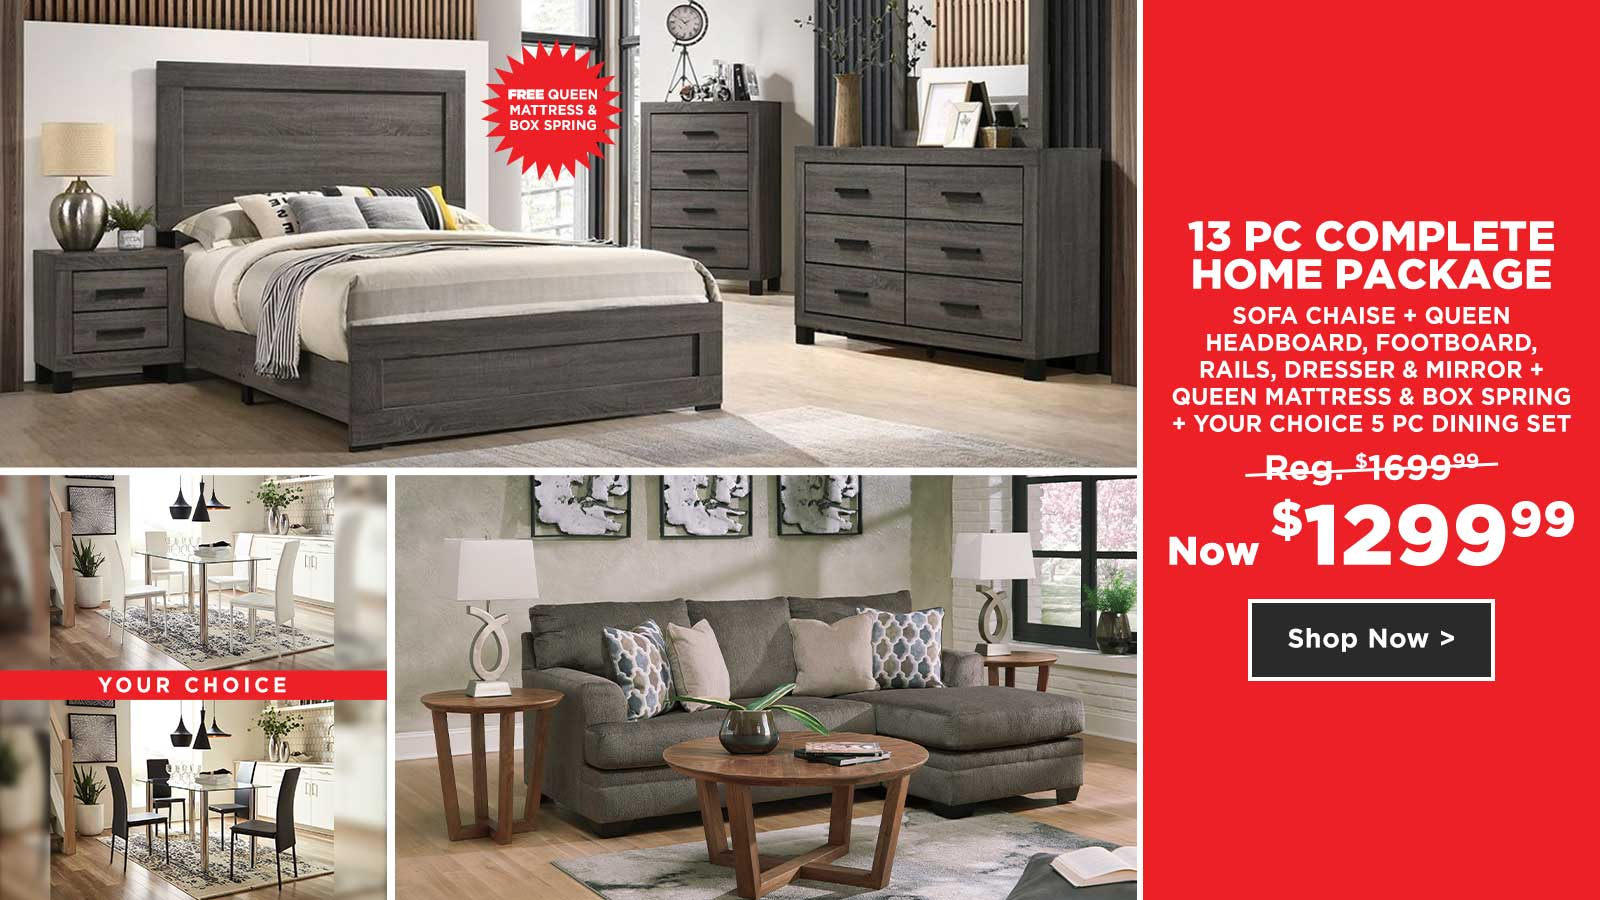 13pc Complete Home Package $1299.99